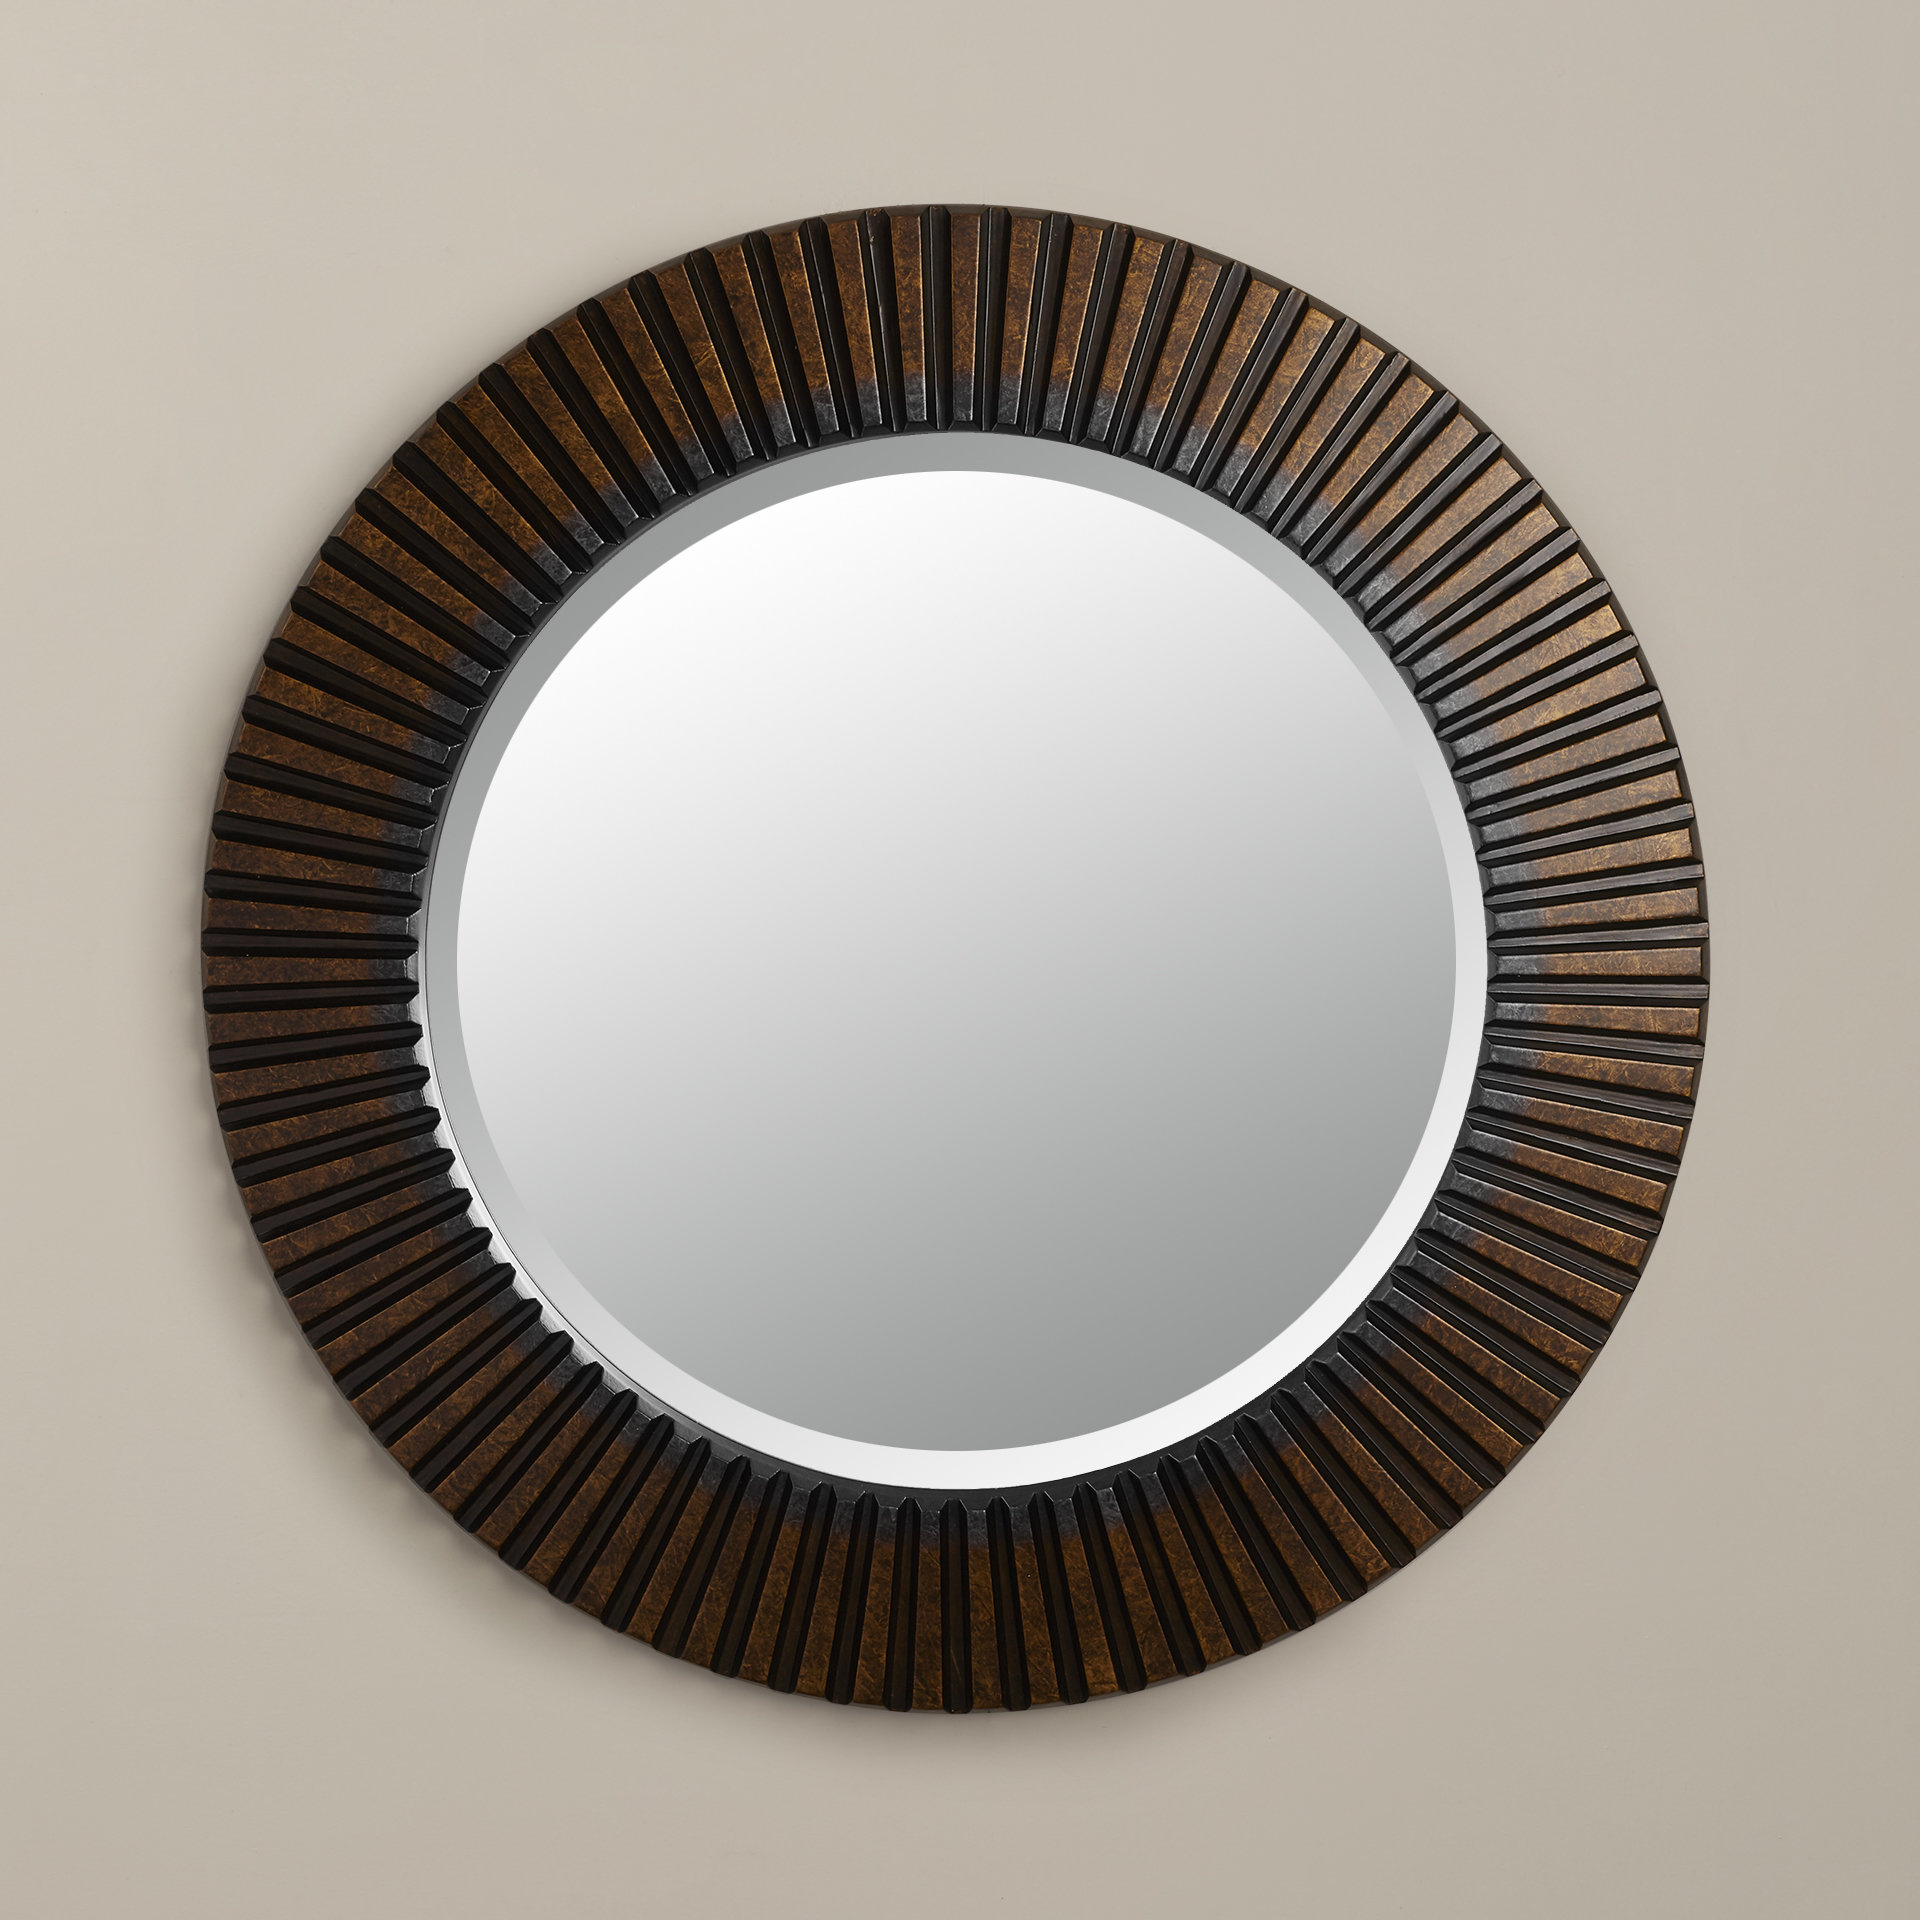 Most Recently Released World Menagerie Round Eclectic Accent Mirror Within Round Eclectic Accent Mirrors (View 5 of 20)